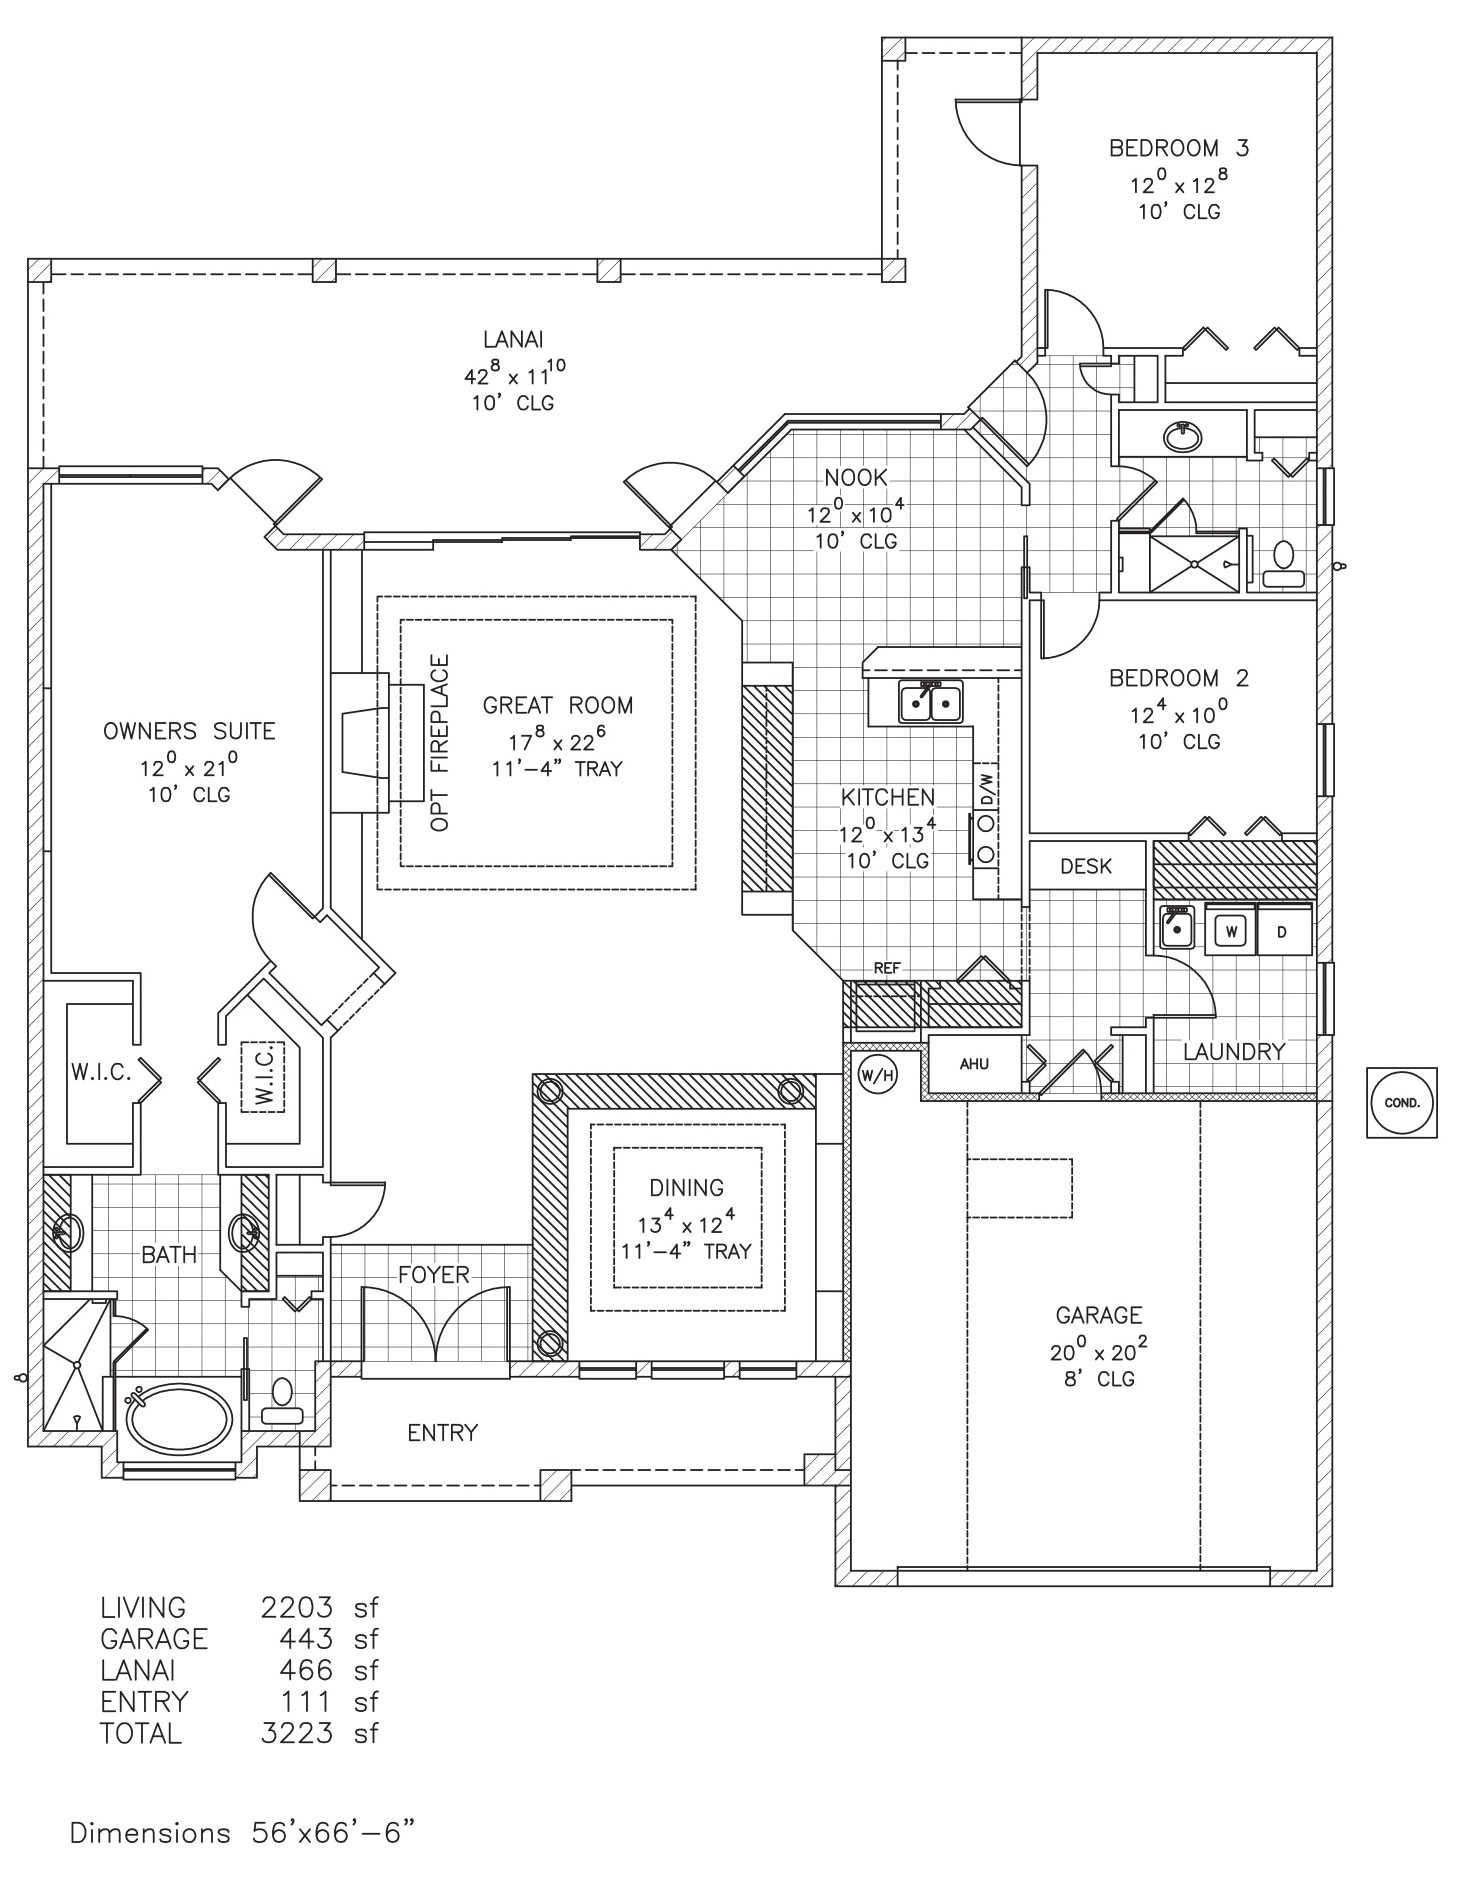 duran homes floor plans awesome carolina new home floor plan palm coast and flagler beach fl